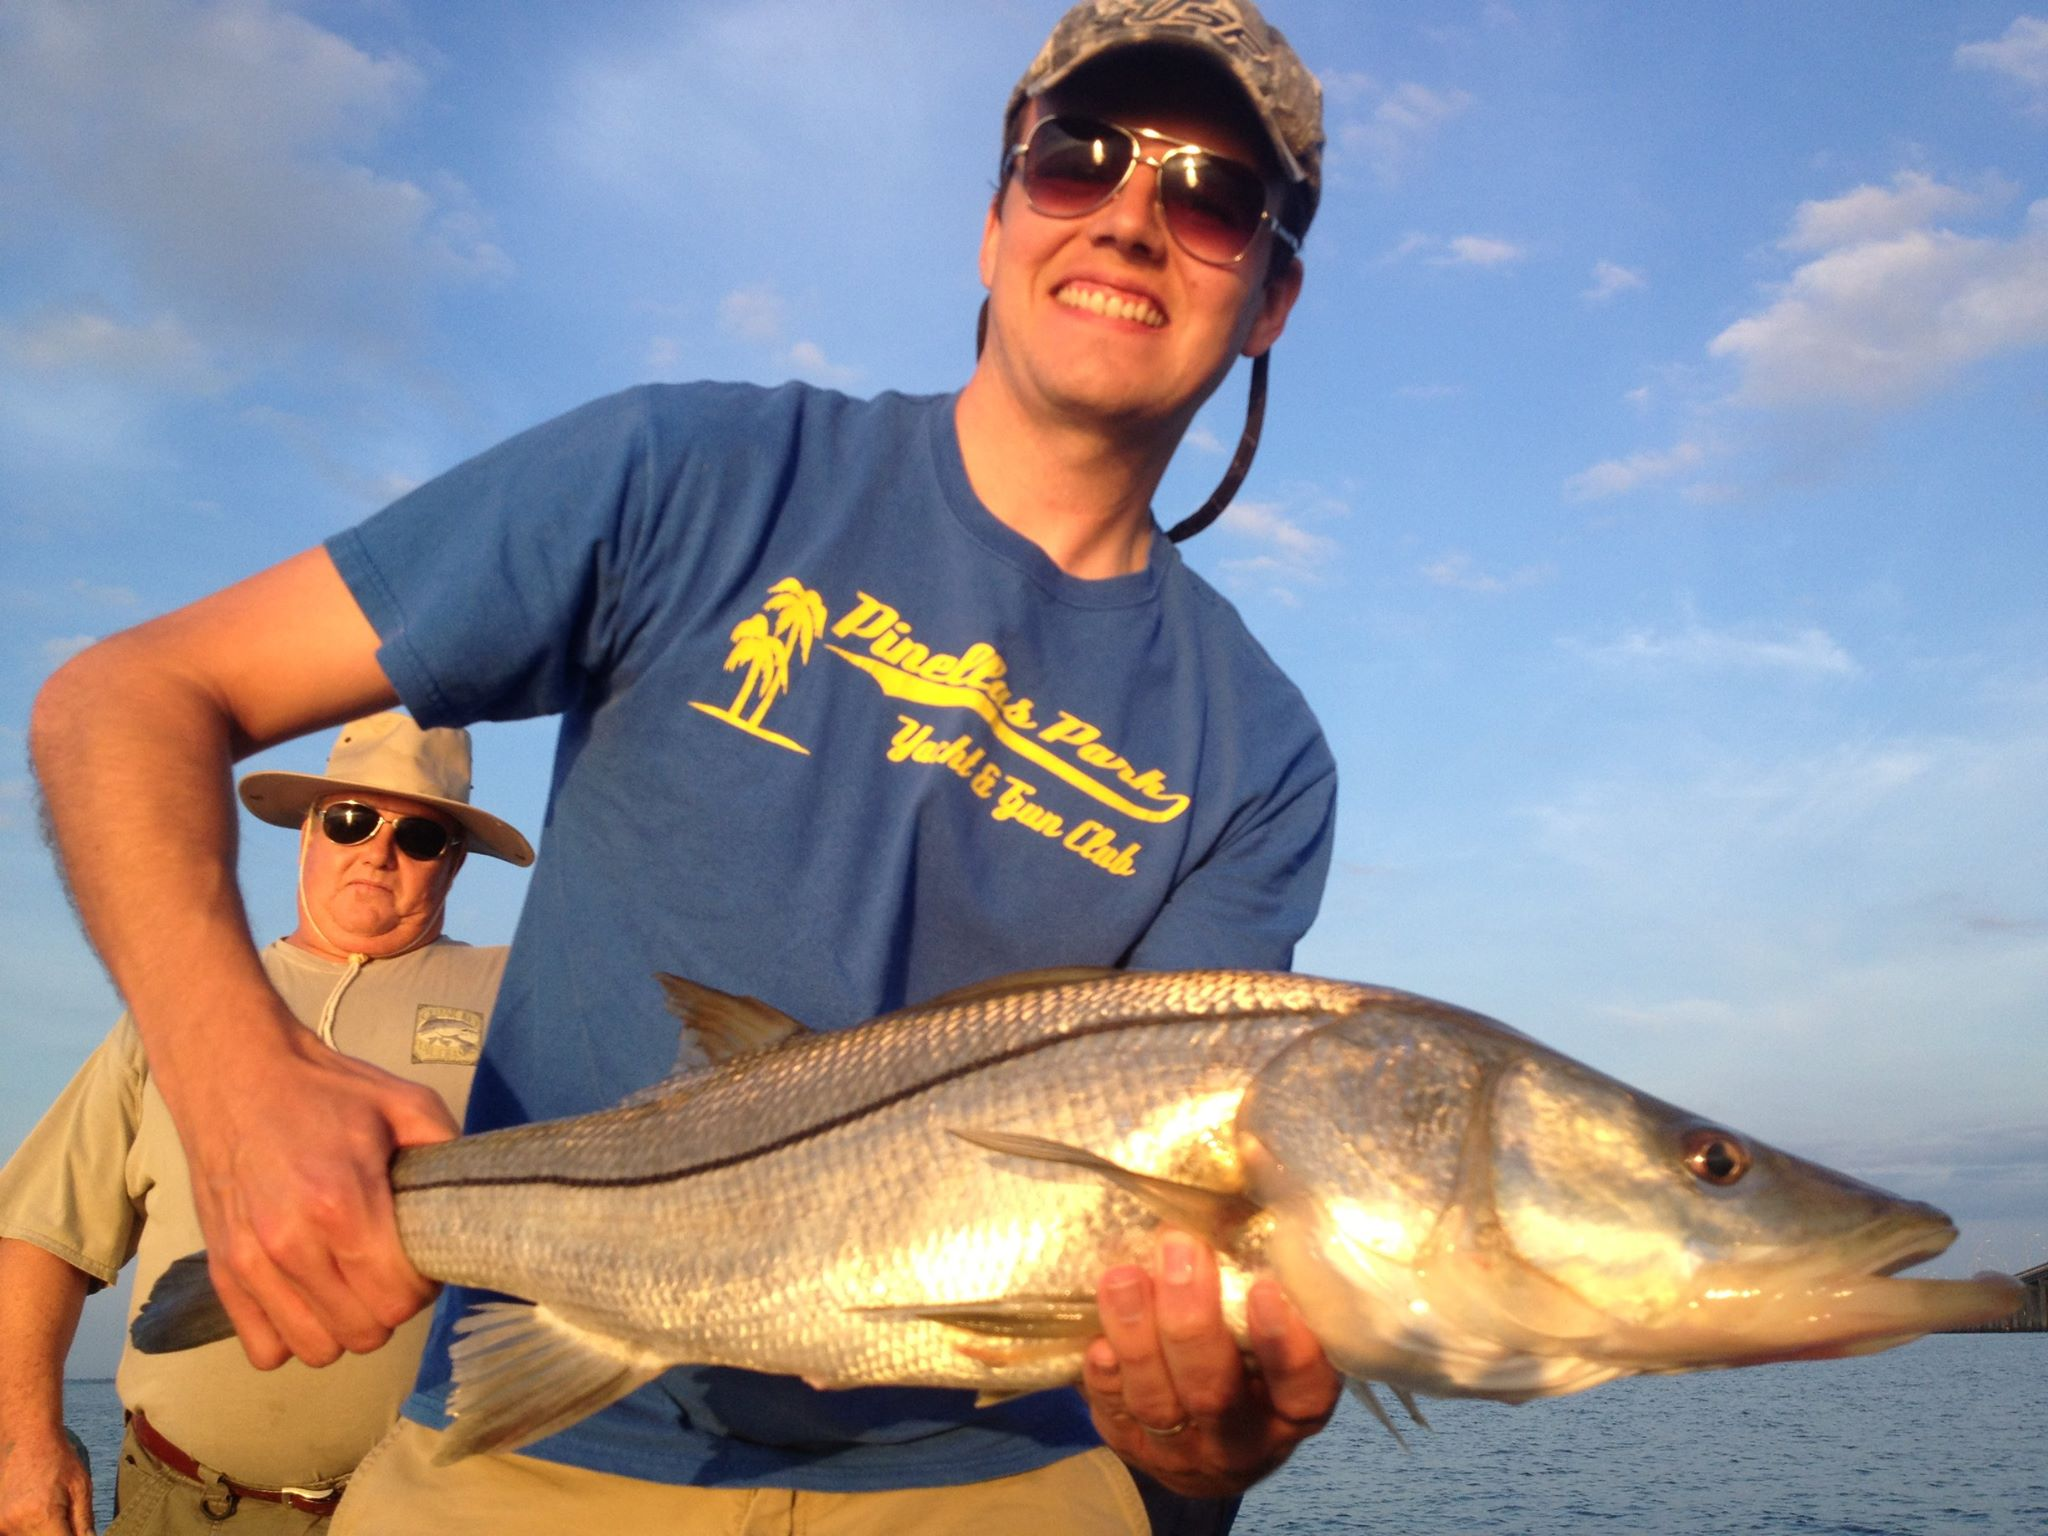 Snook guided fishing trip for Tampa bay fishing guides